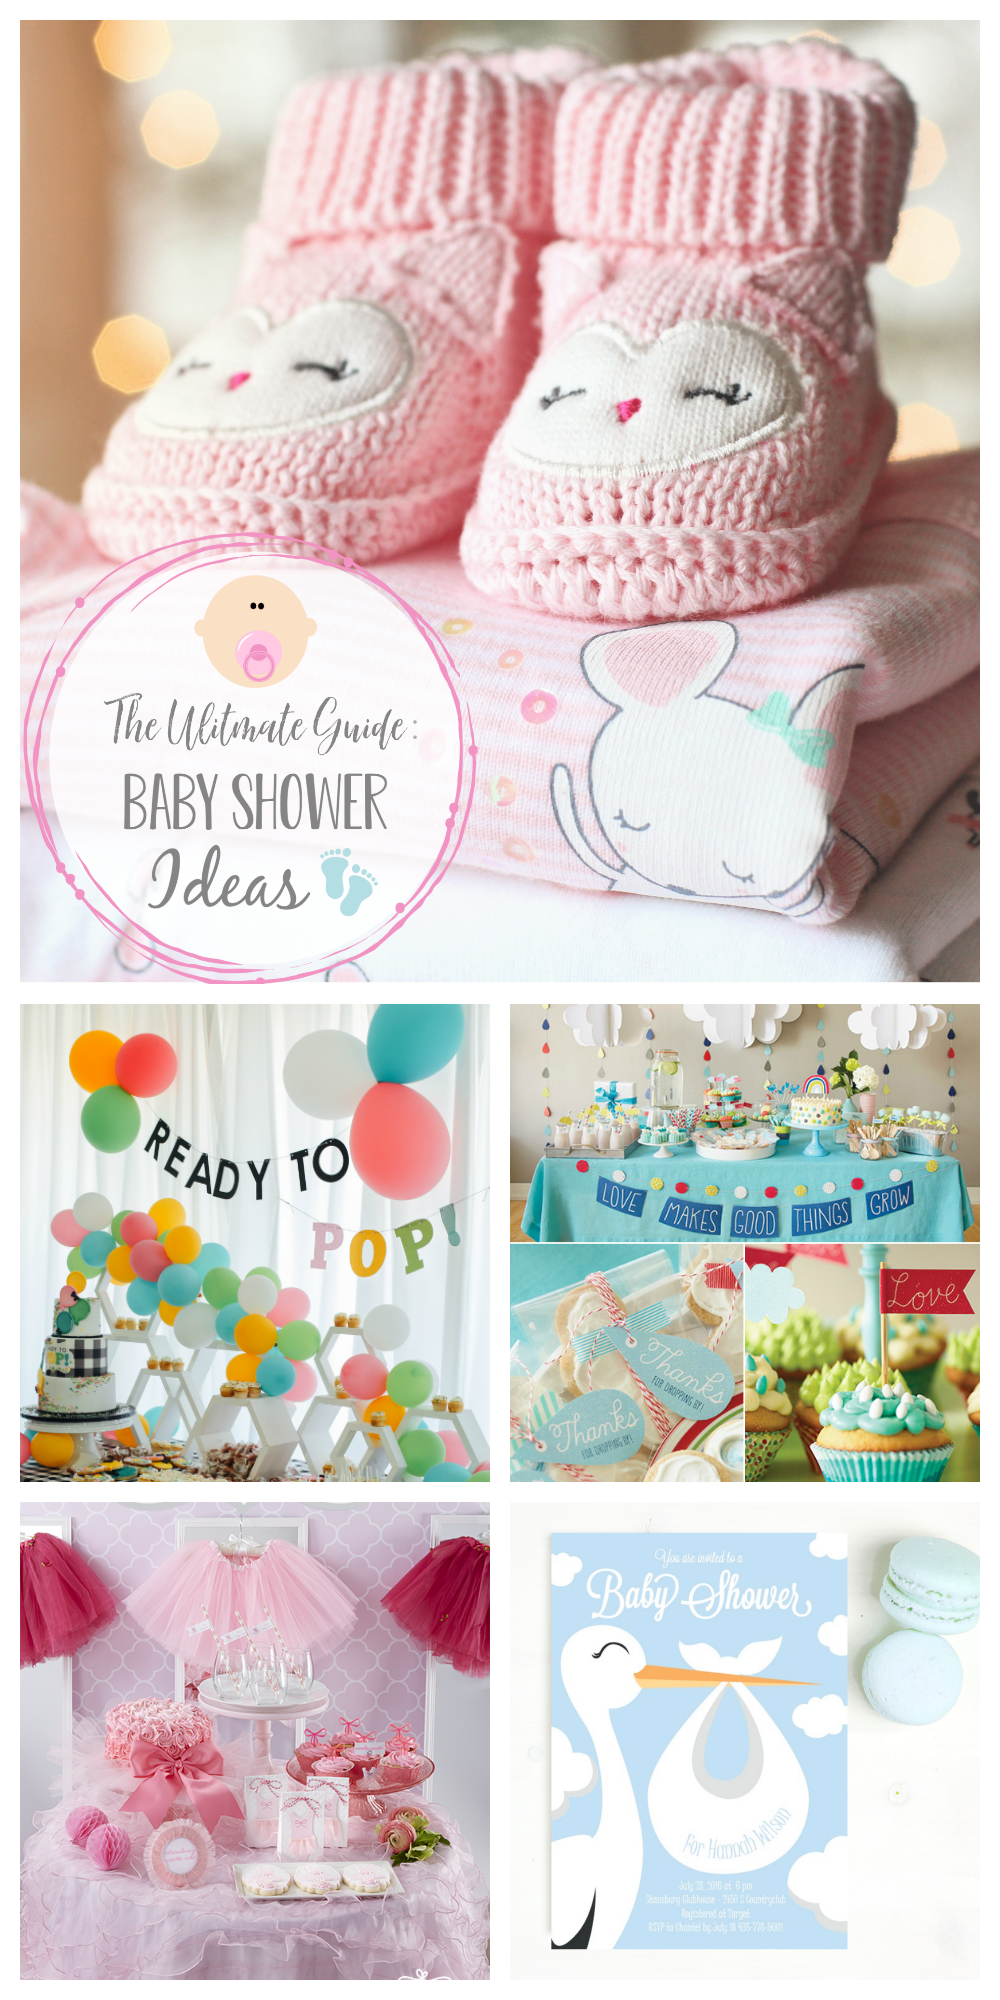 Baby Shower Ideas-Use these fun baby shower themes, decorations, games, favor ideas and more to plan a killer baby shower! So many baby shower ideas for you! #babyshower #babyshowerideas #babyshowers #baby #party